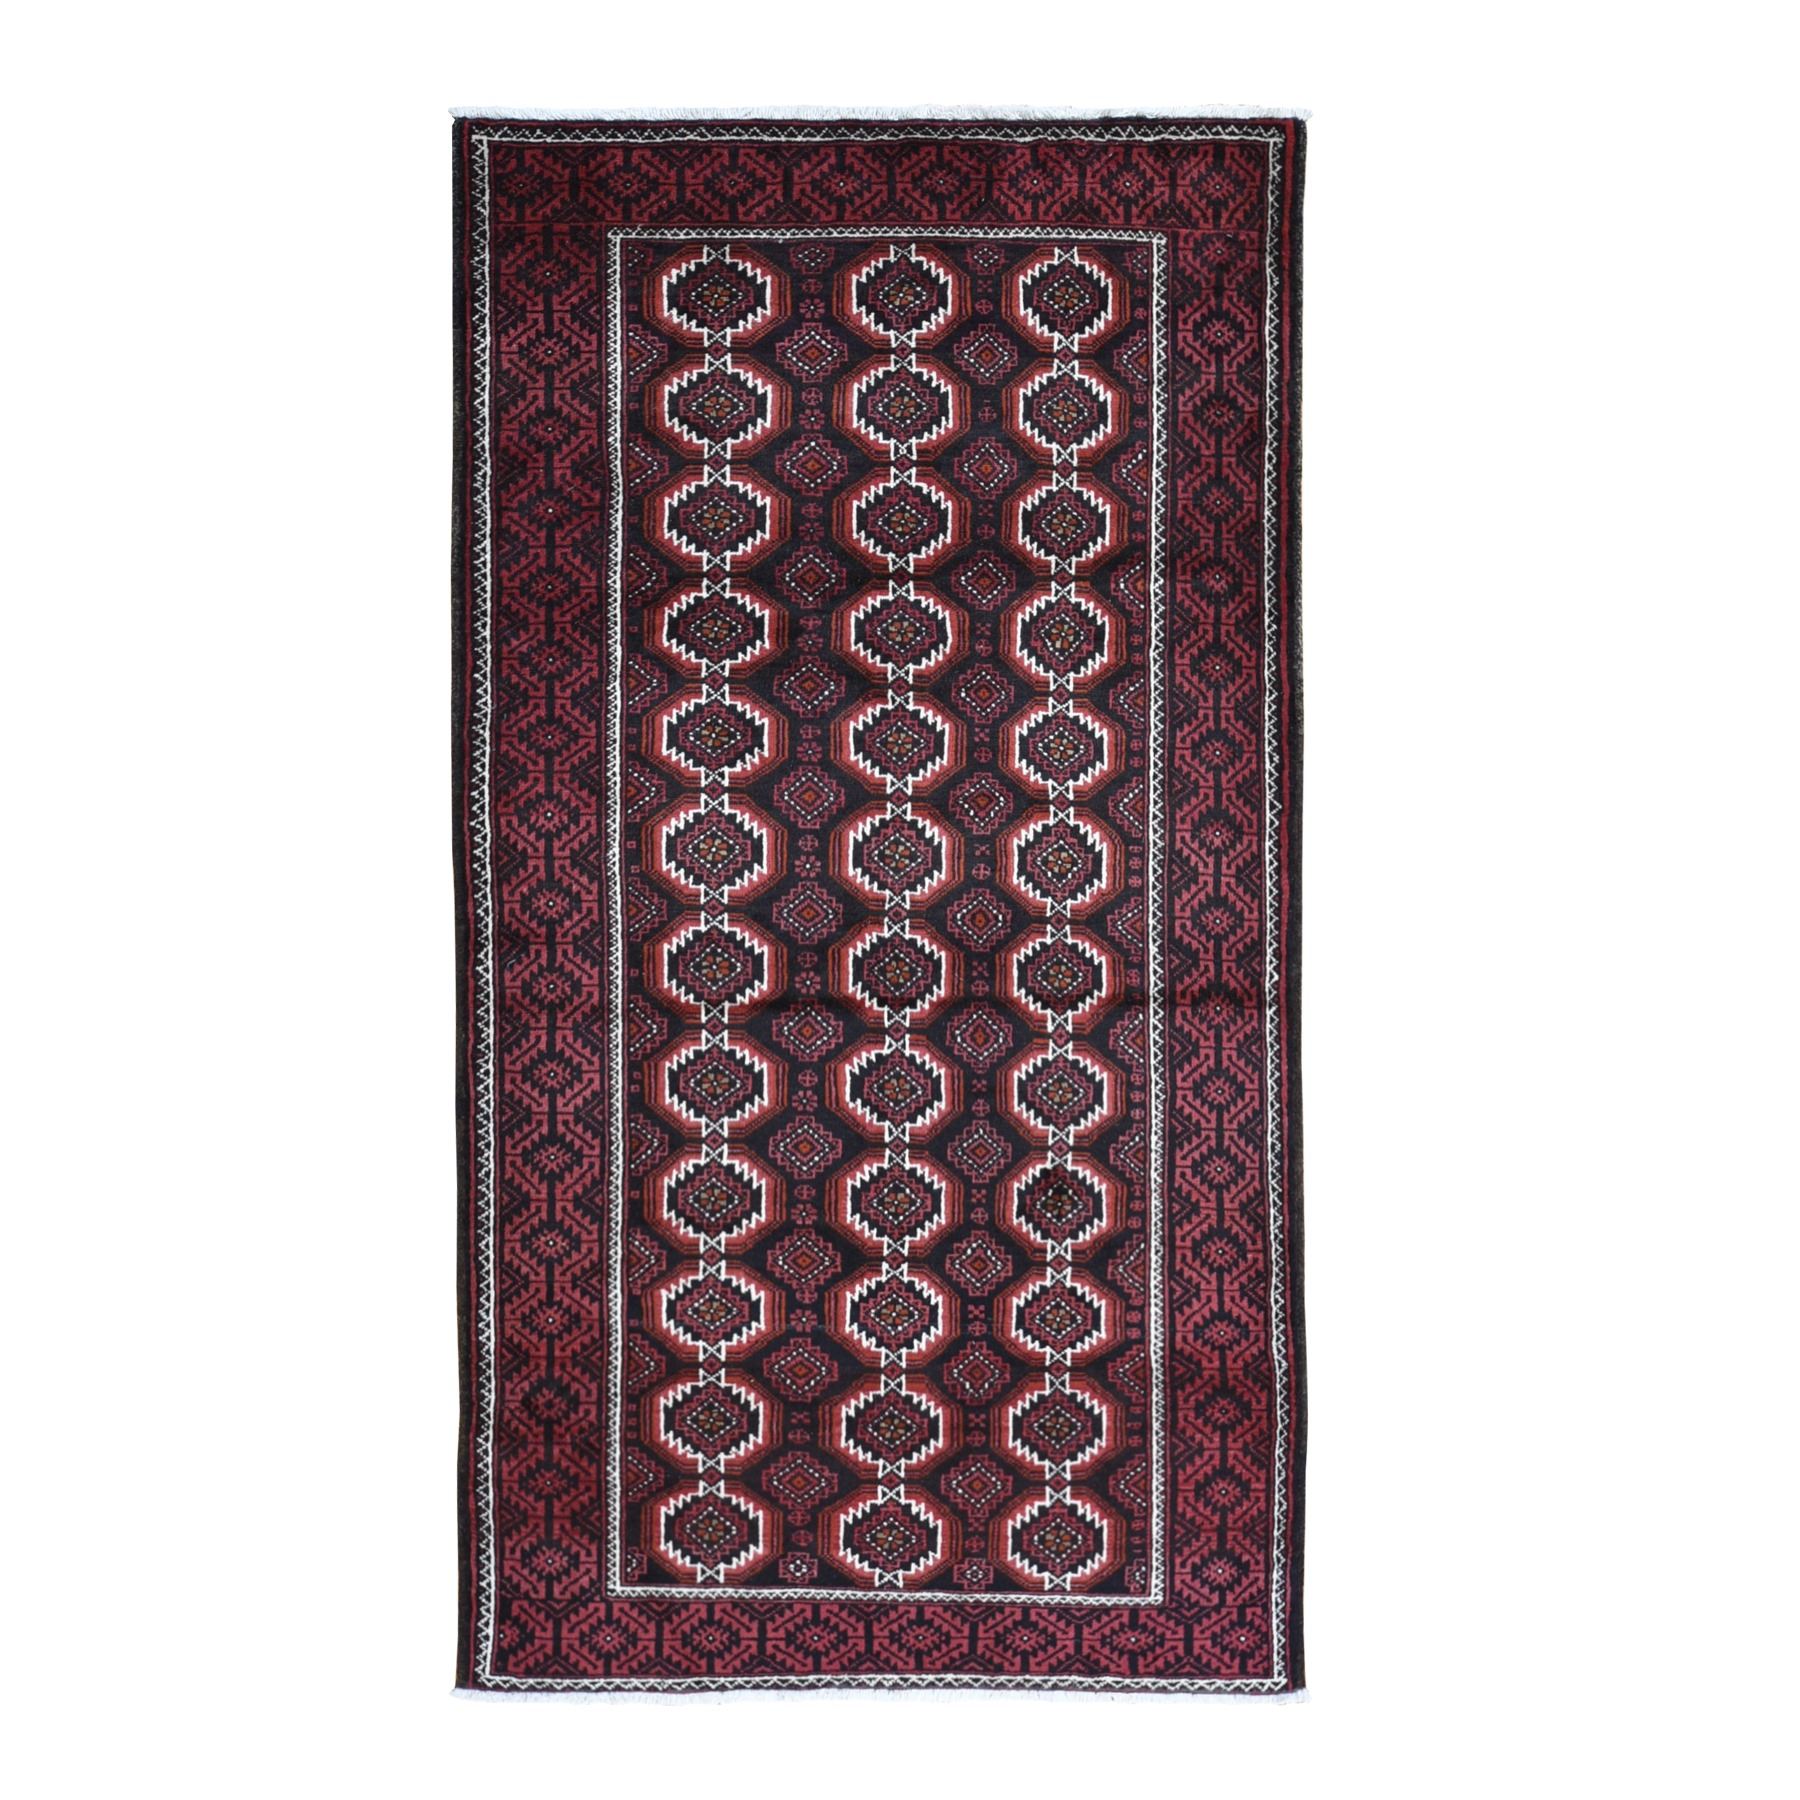 """4'4""""x8' Vintage Persian Large Baluch Pure Wool Runner Geometric Hand Knotted Oriental Rug"""